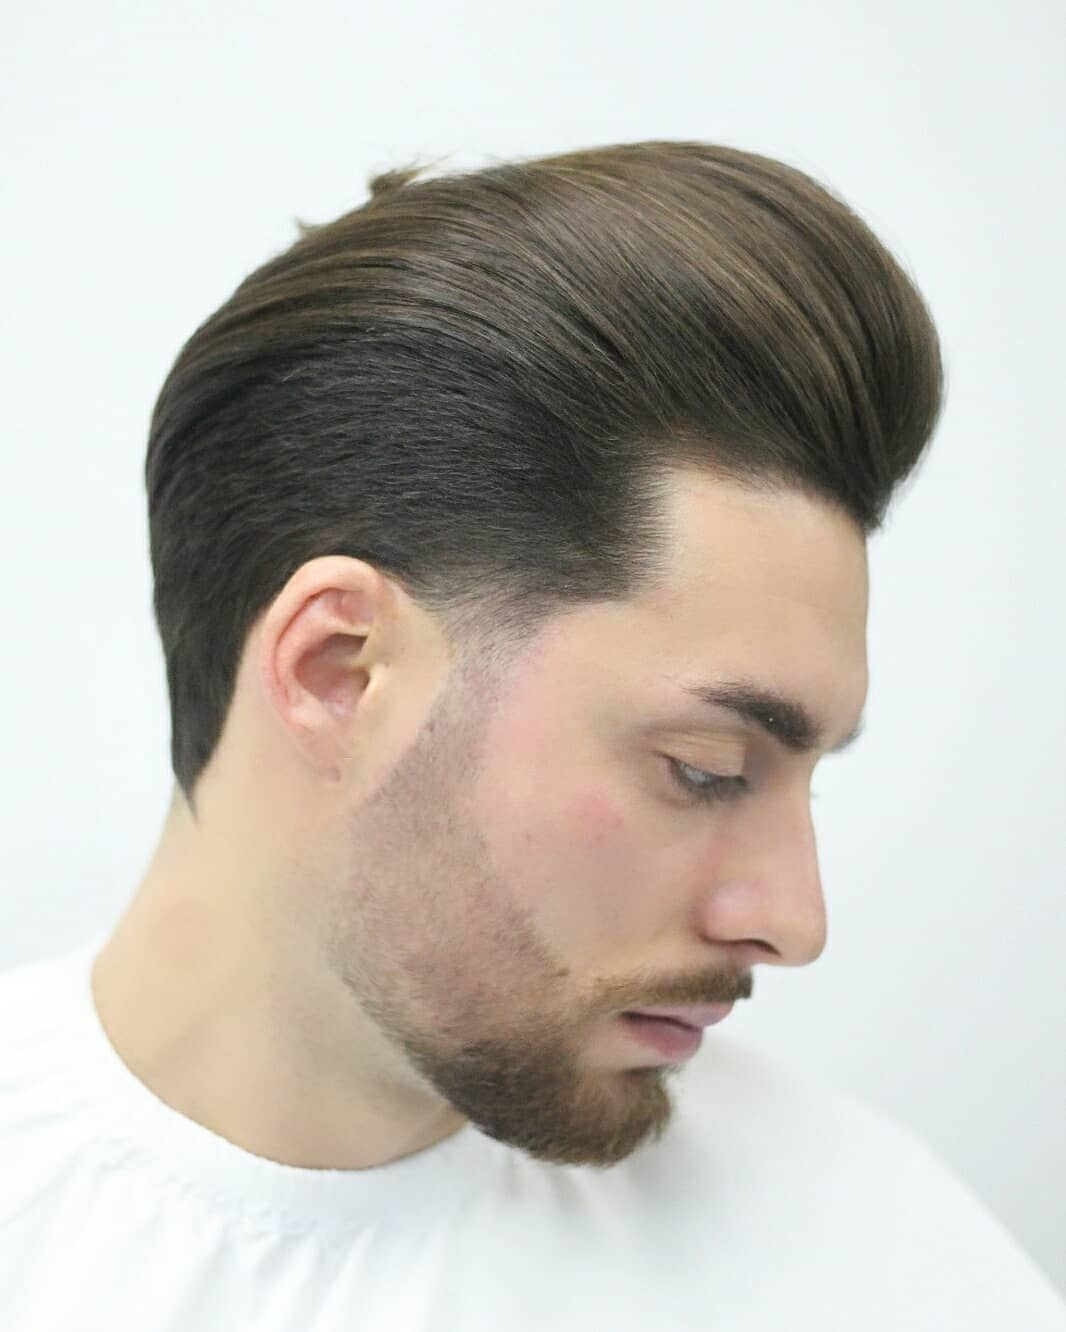 men's hairstyle trends 2019 | hair for pig year in 2019